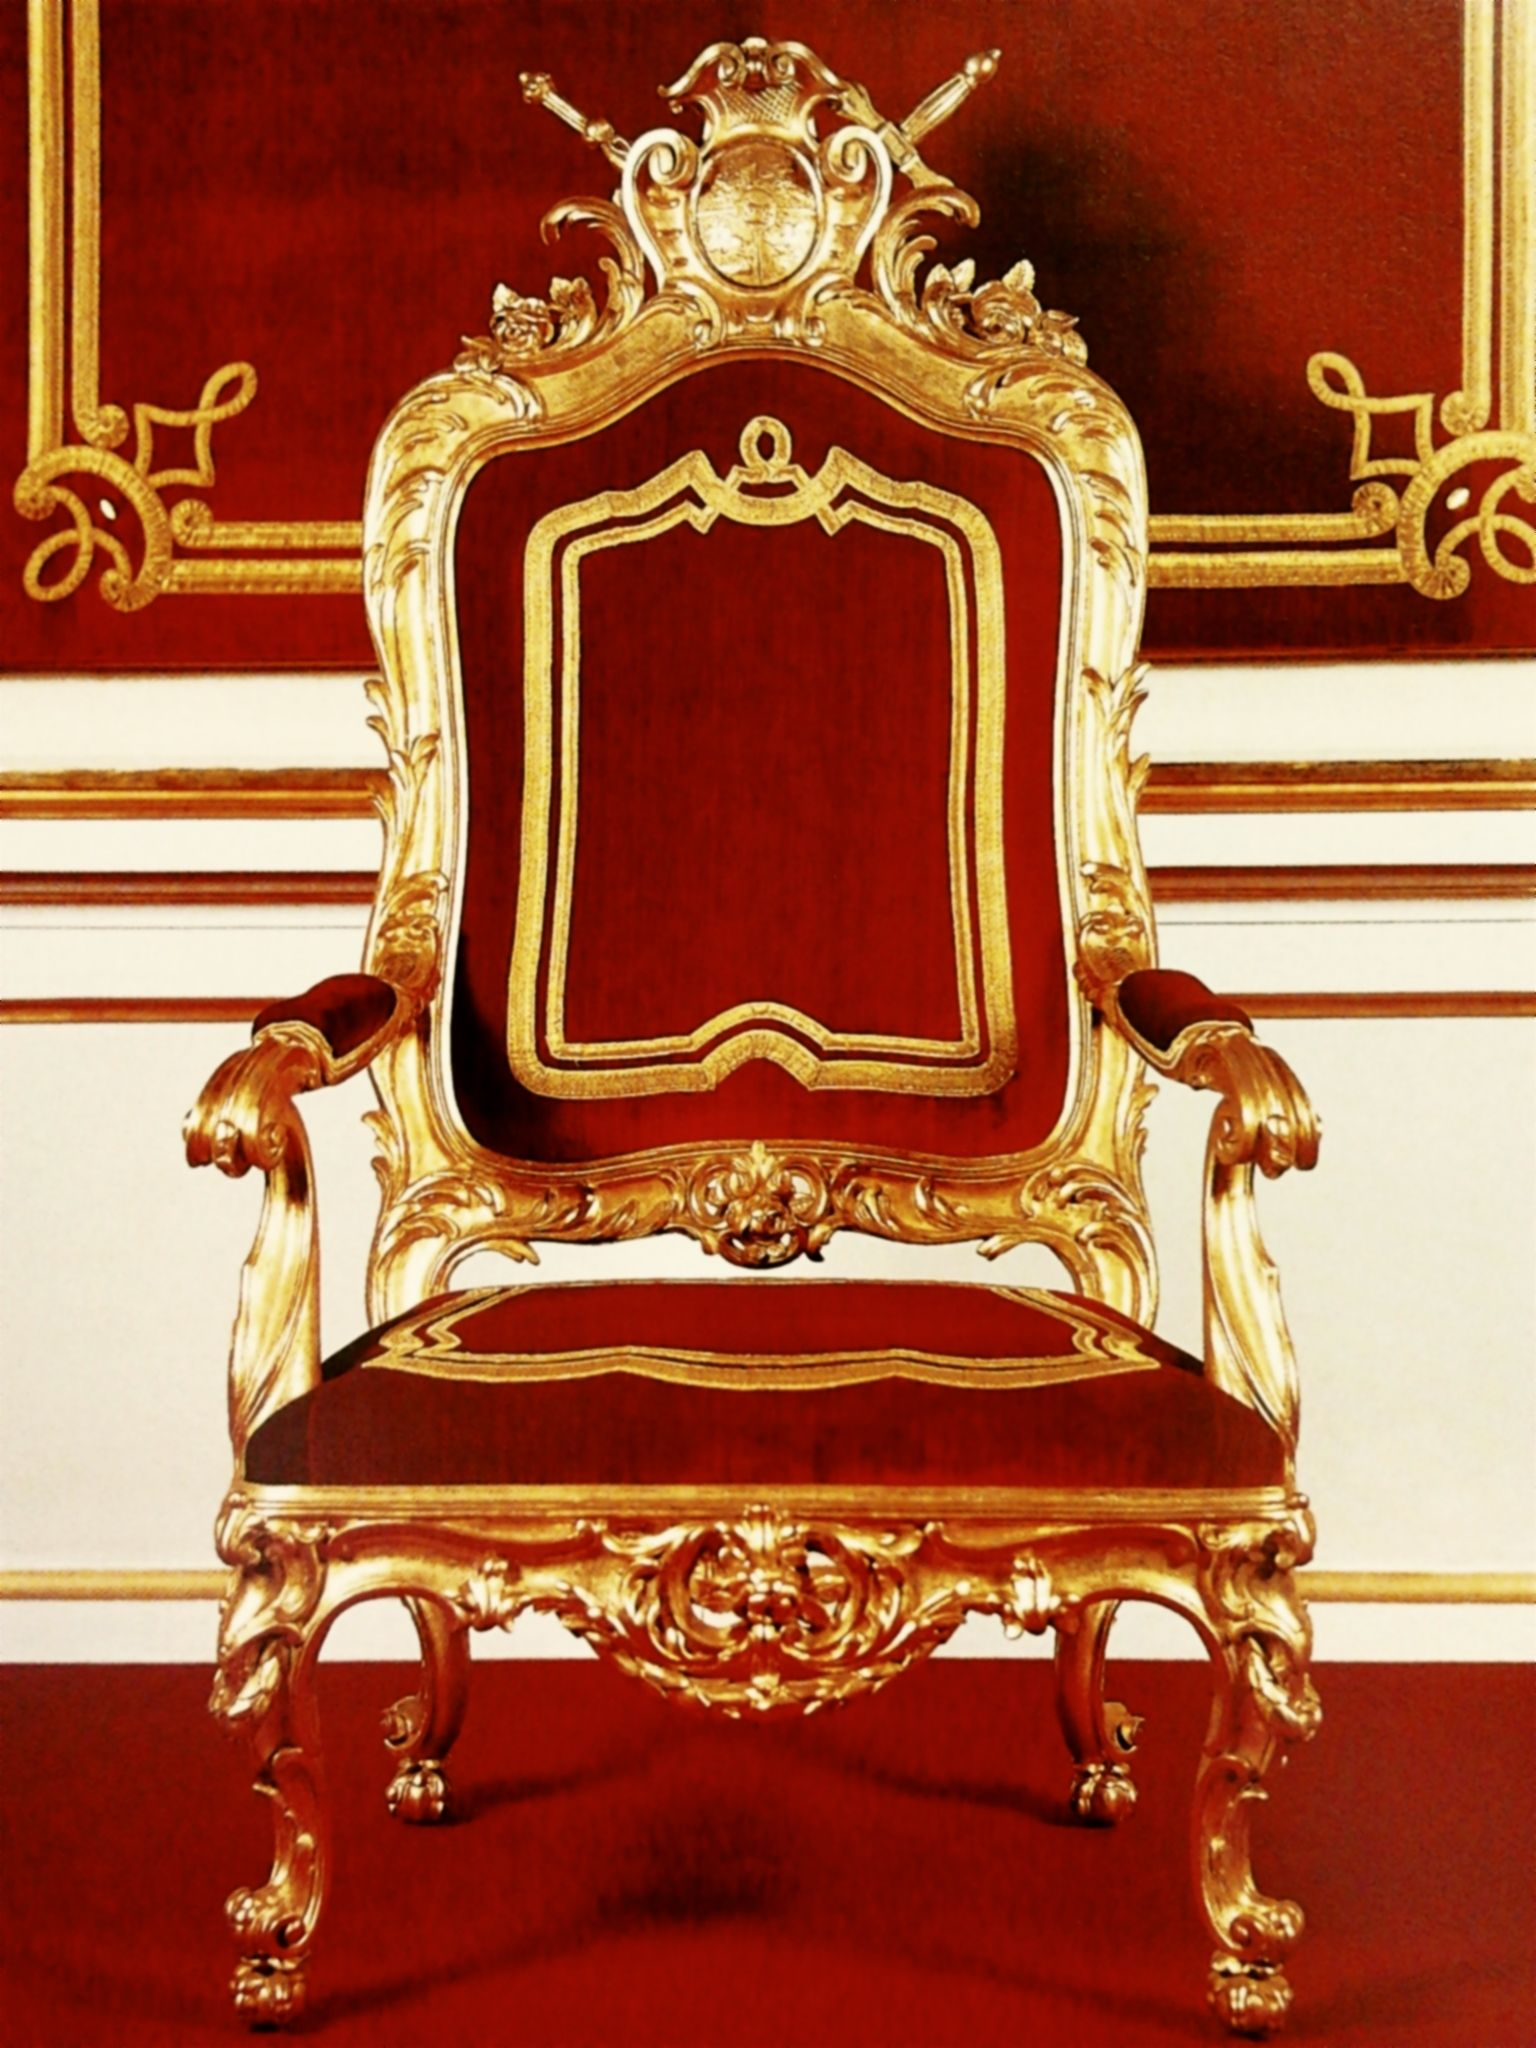 Silla Red Castle Stanislas August Of Poland Throne Chair 1764 Royal